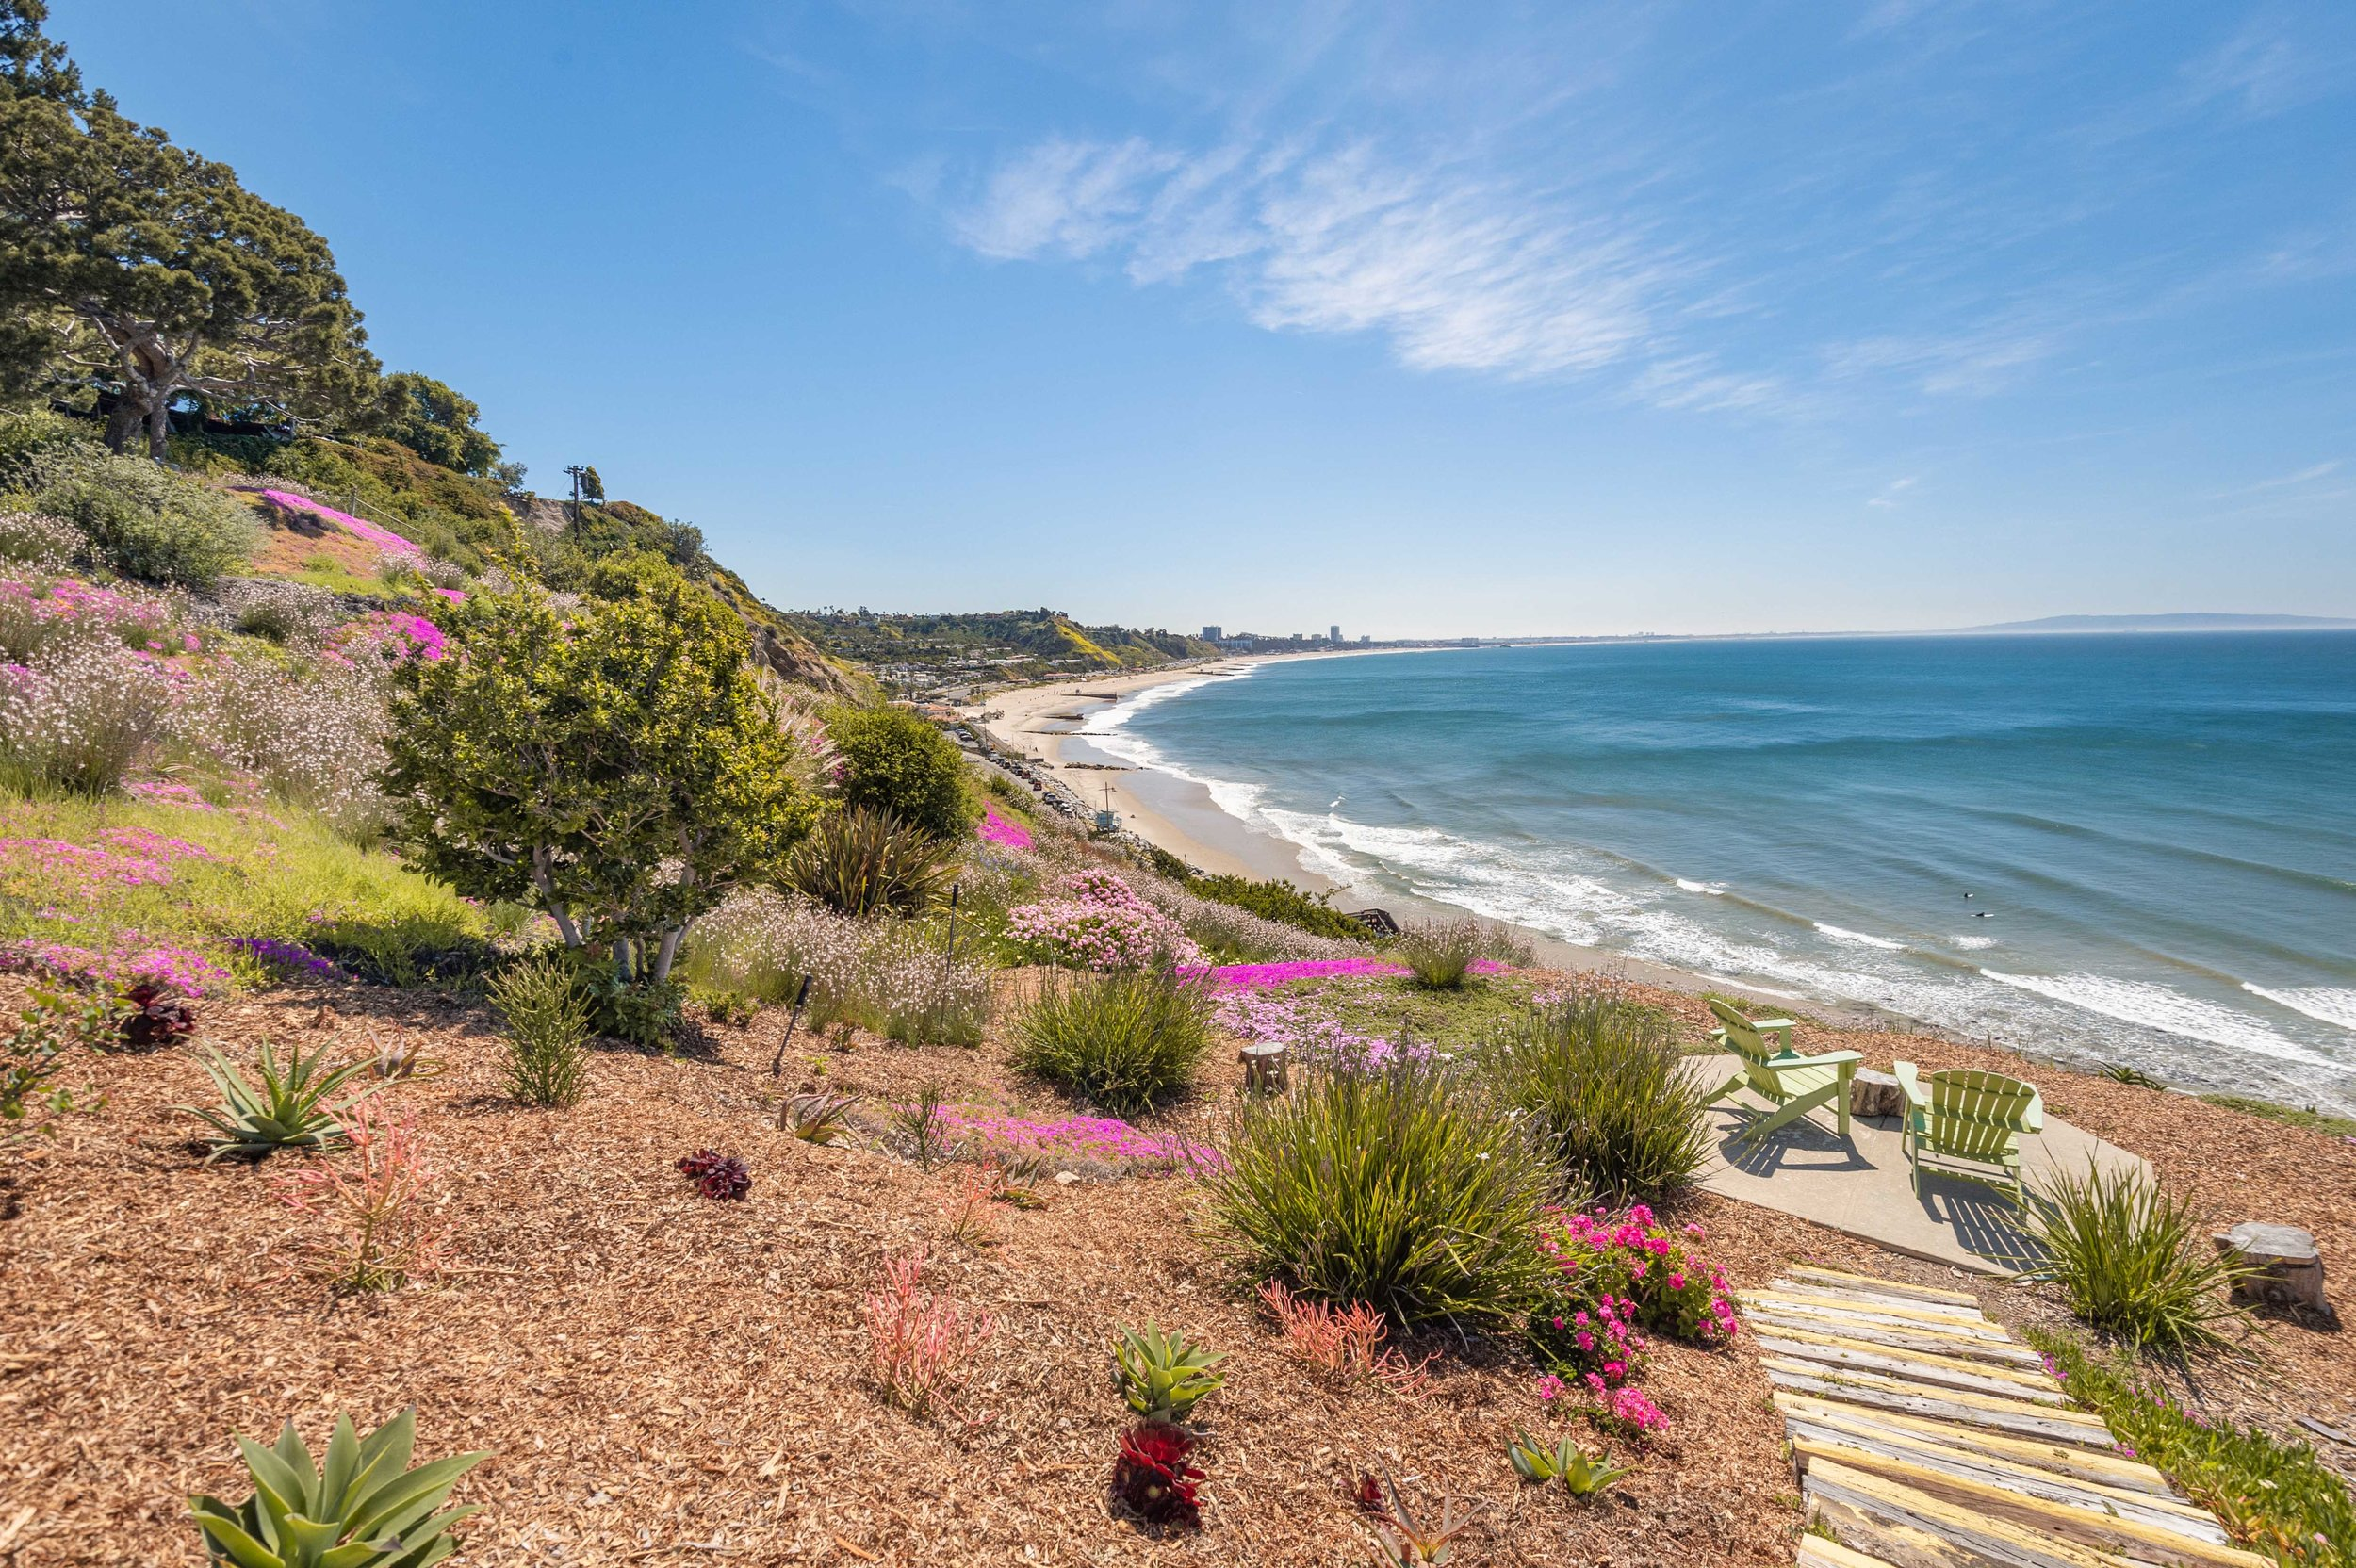 002 Ocean View Park 17350 West Sunset Boulevard For Sale Lease The Malibu Life Team Luxury Real Estate.jpg